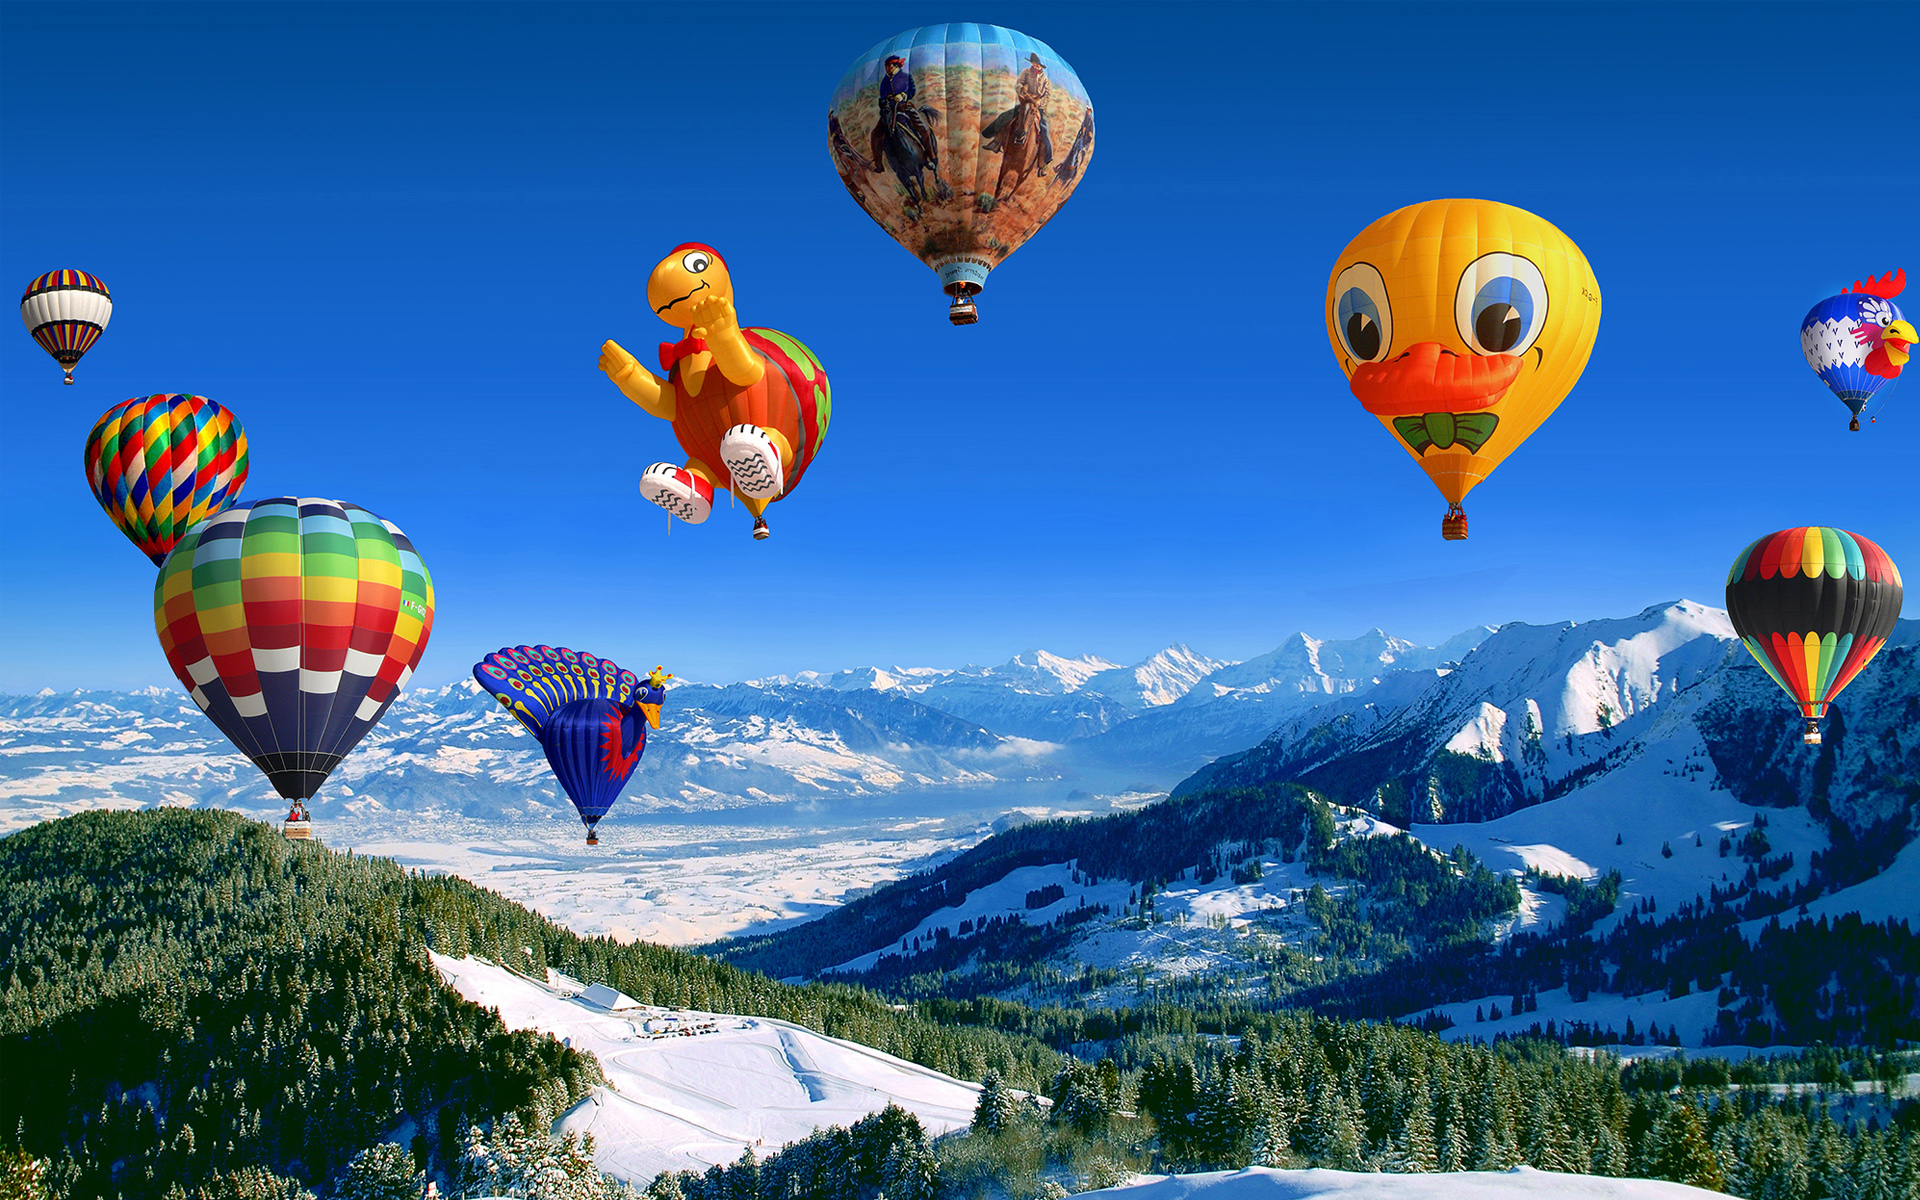 Free Download Hot Air Balloon Festival Wallpapers Hd Wallpapers